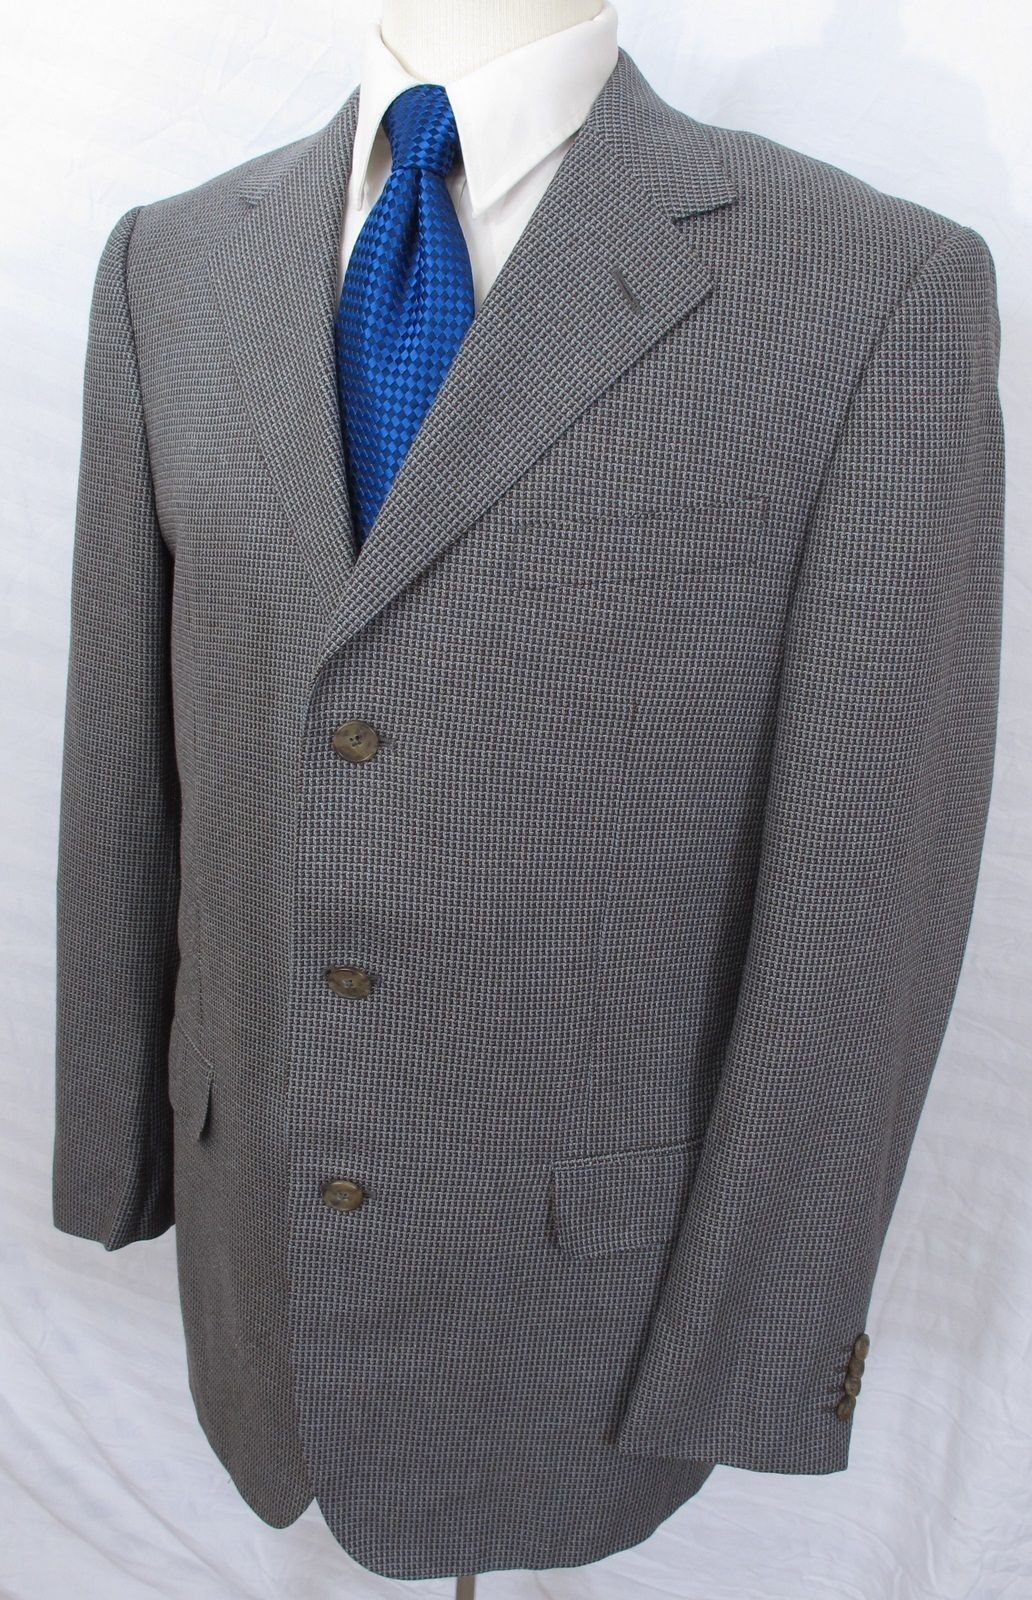 Ermenegildo Zegna Wool Silk Sport Coat grau Braun Houndstooth 40R PERFECT